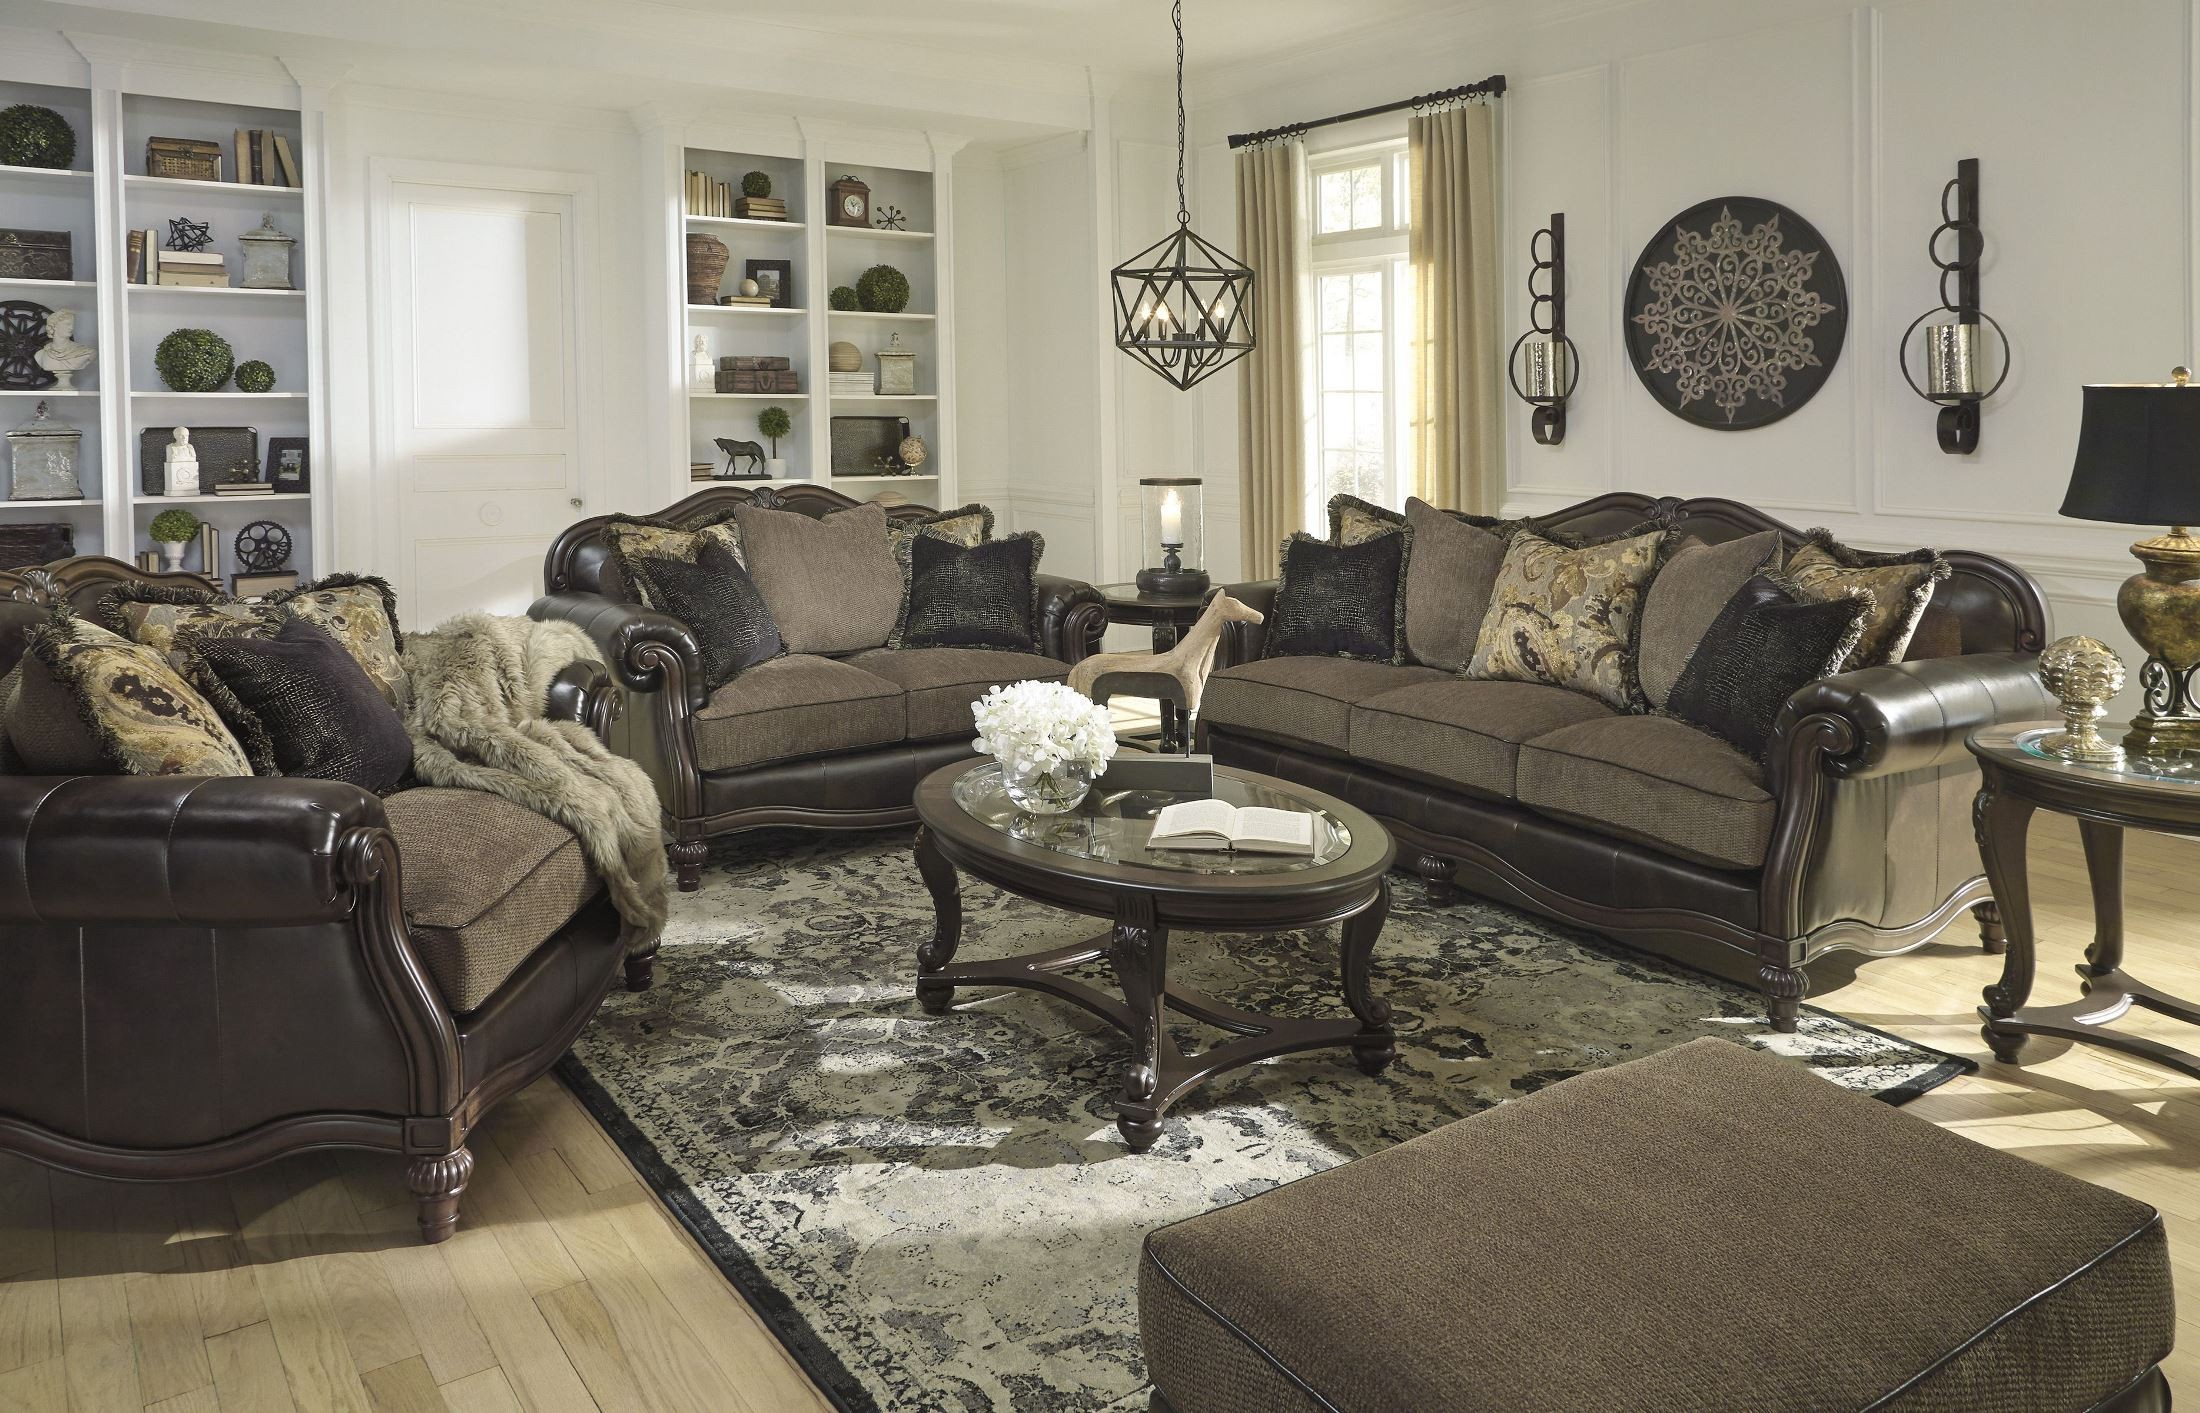 Signature Design Ashley Winnsboro Durablend Vintage Living Room throughout Free Living Room Set